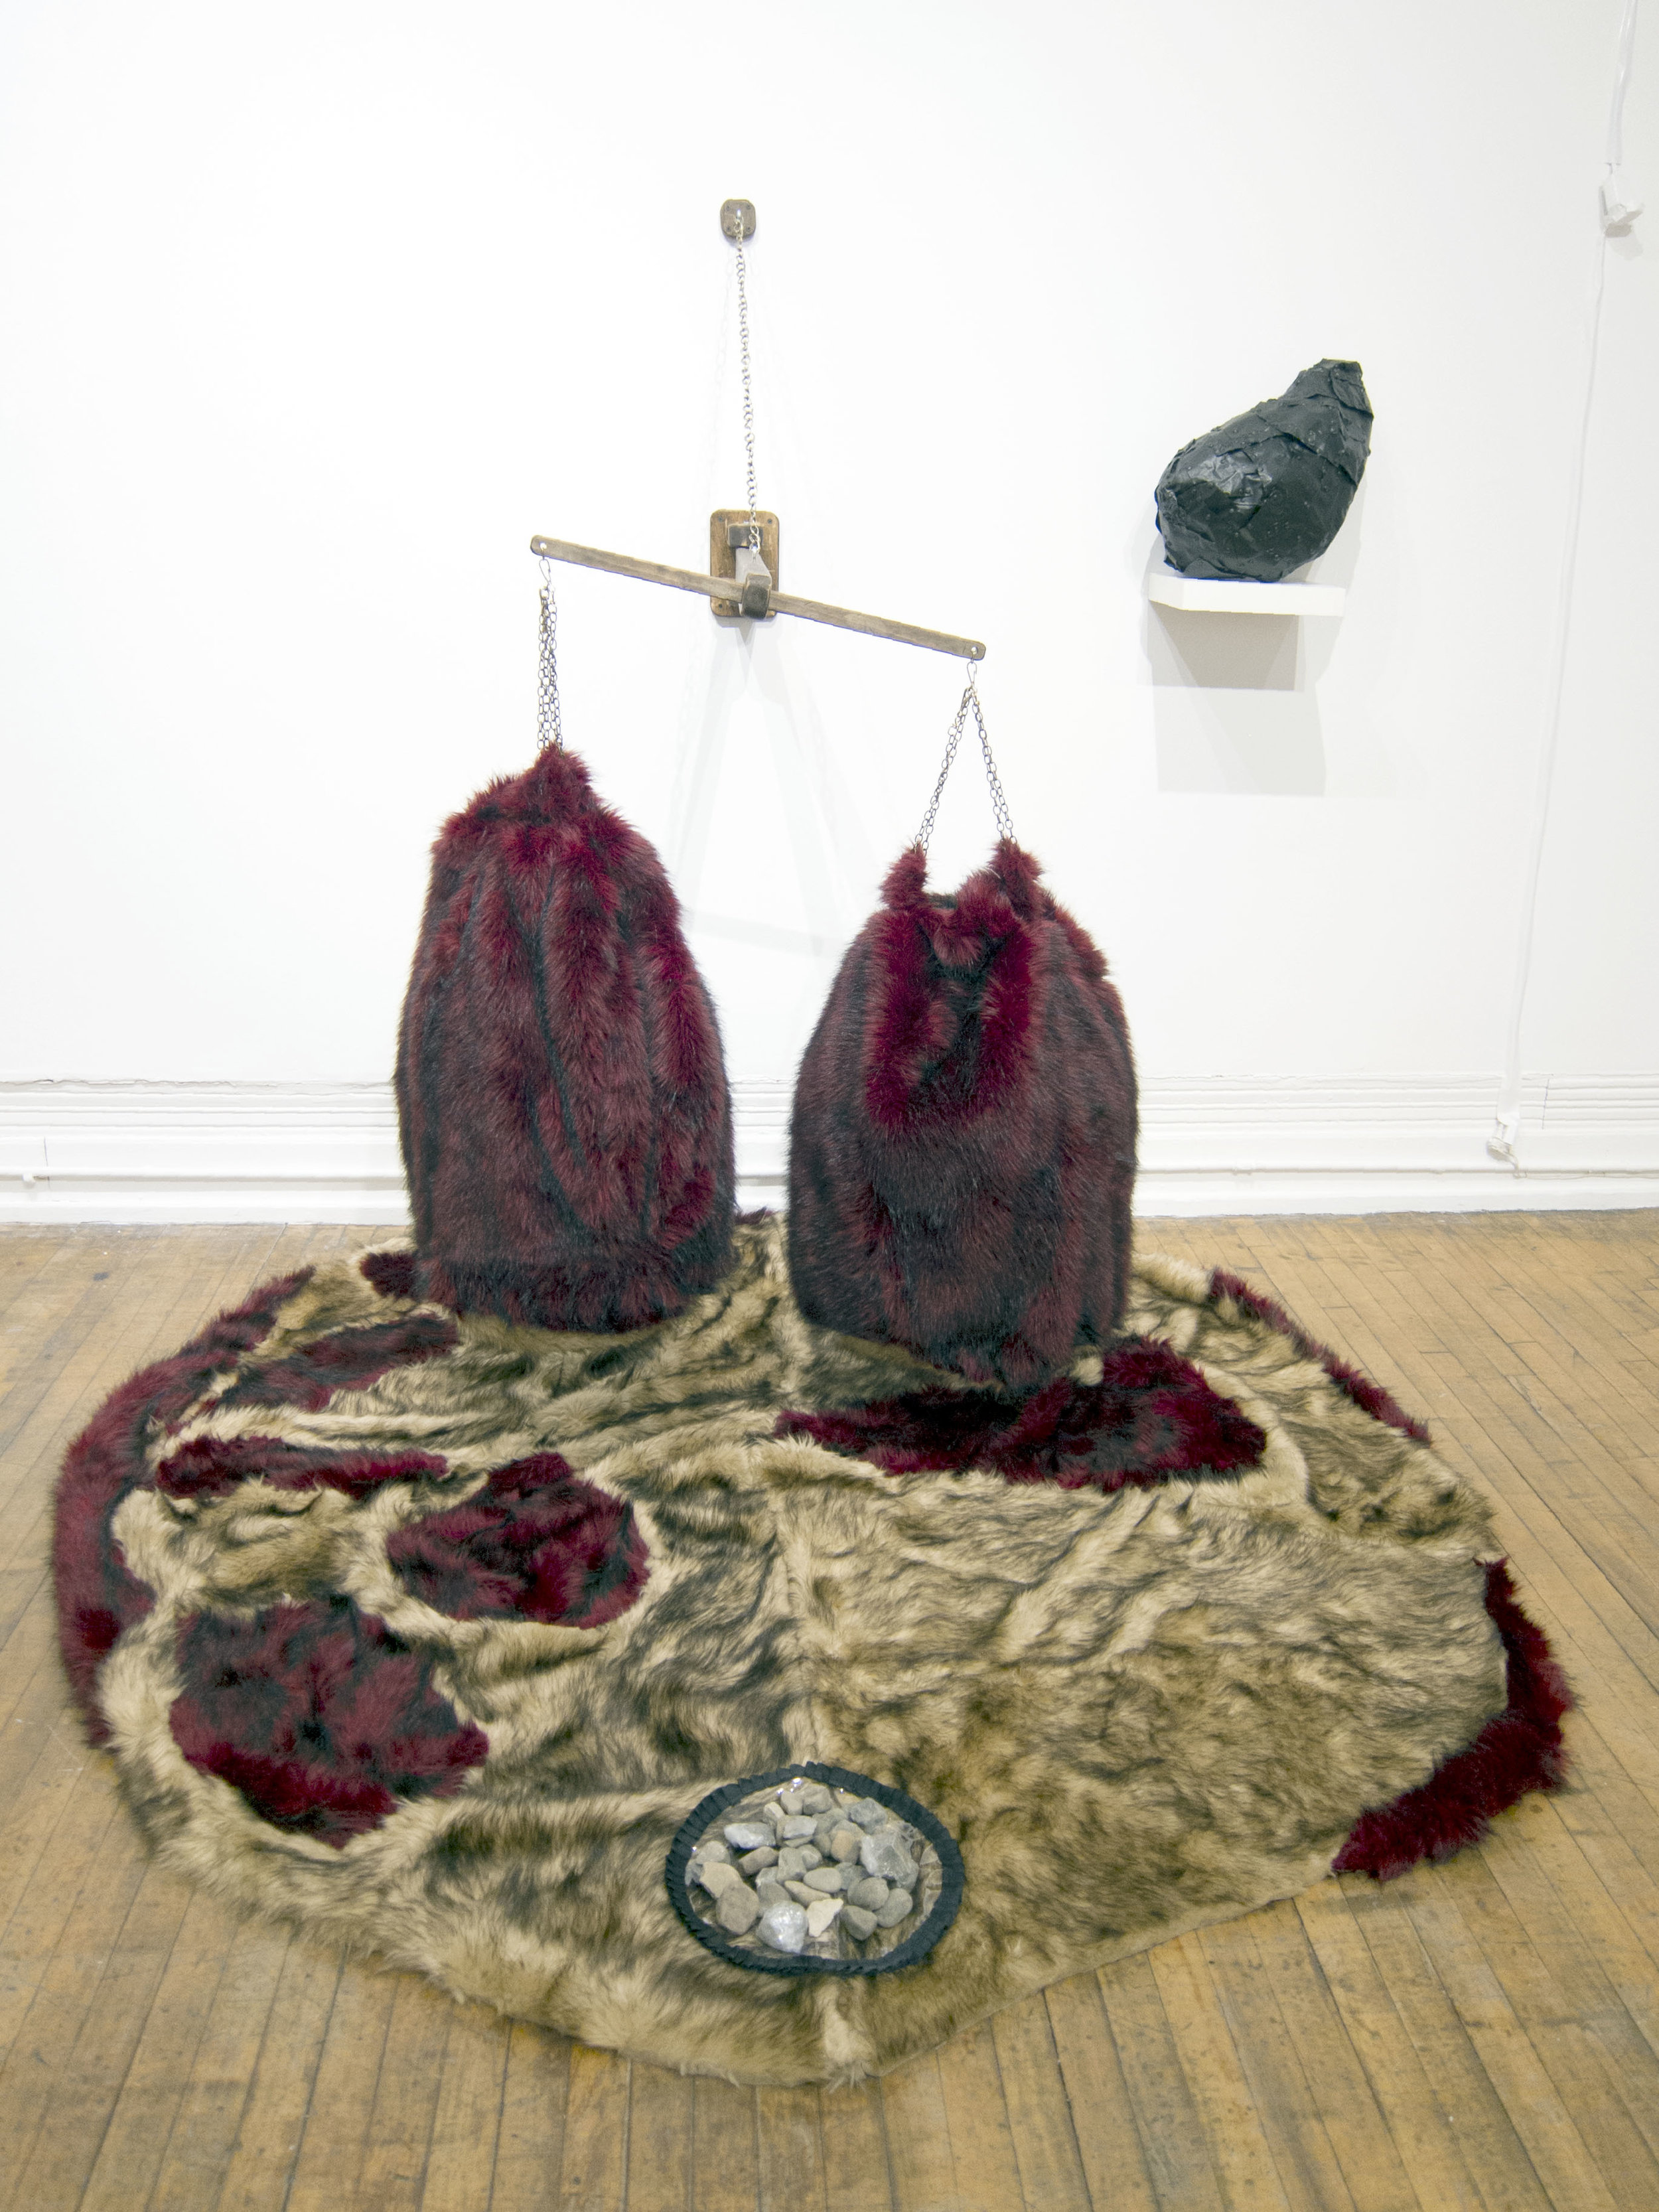 """Nursing Chamber , Mixed media installation, 30""""x20""""x22"""", 2018  A part of the installation """"PIPORNOT's Superorganism."""""""